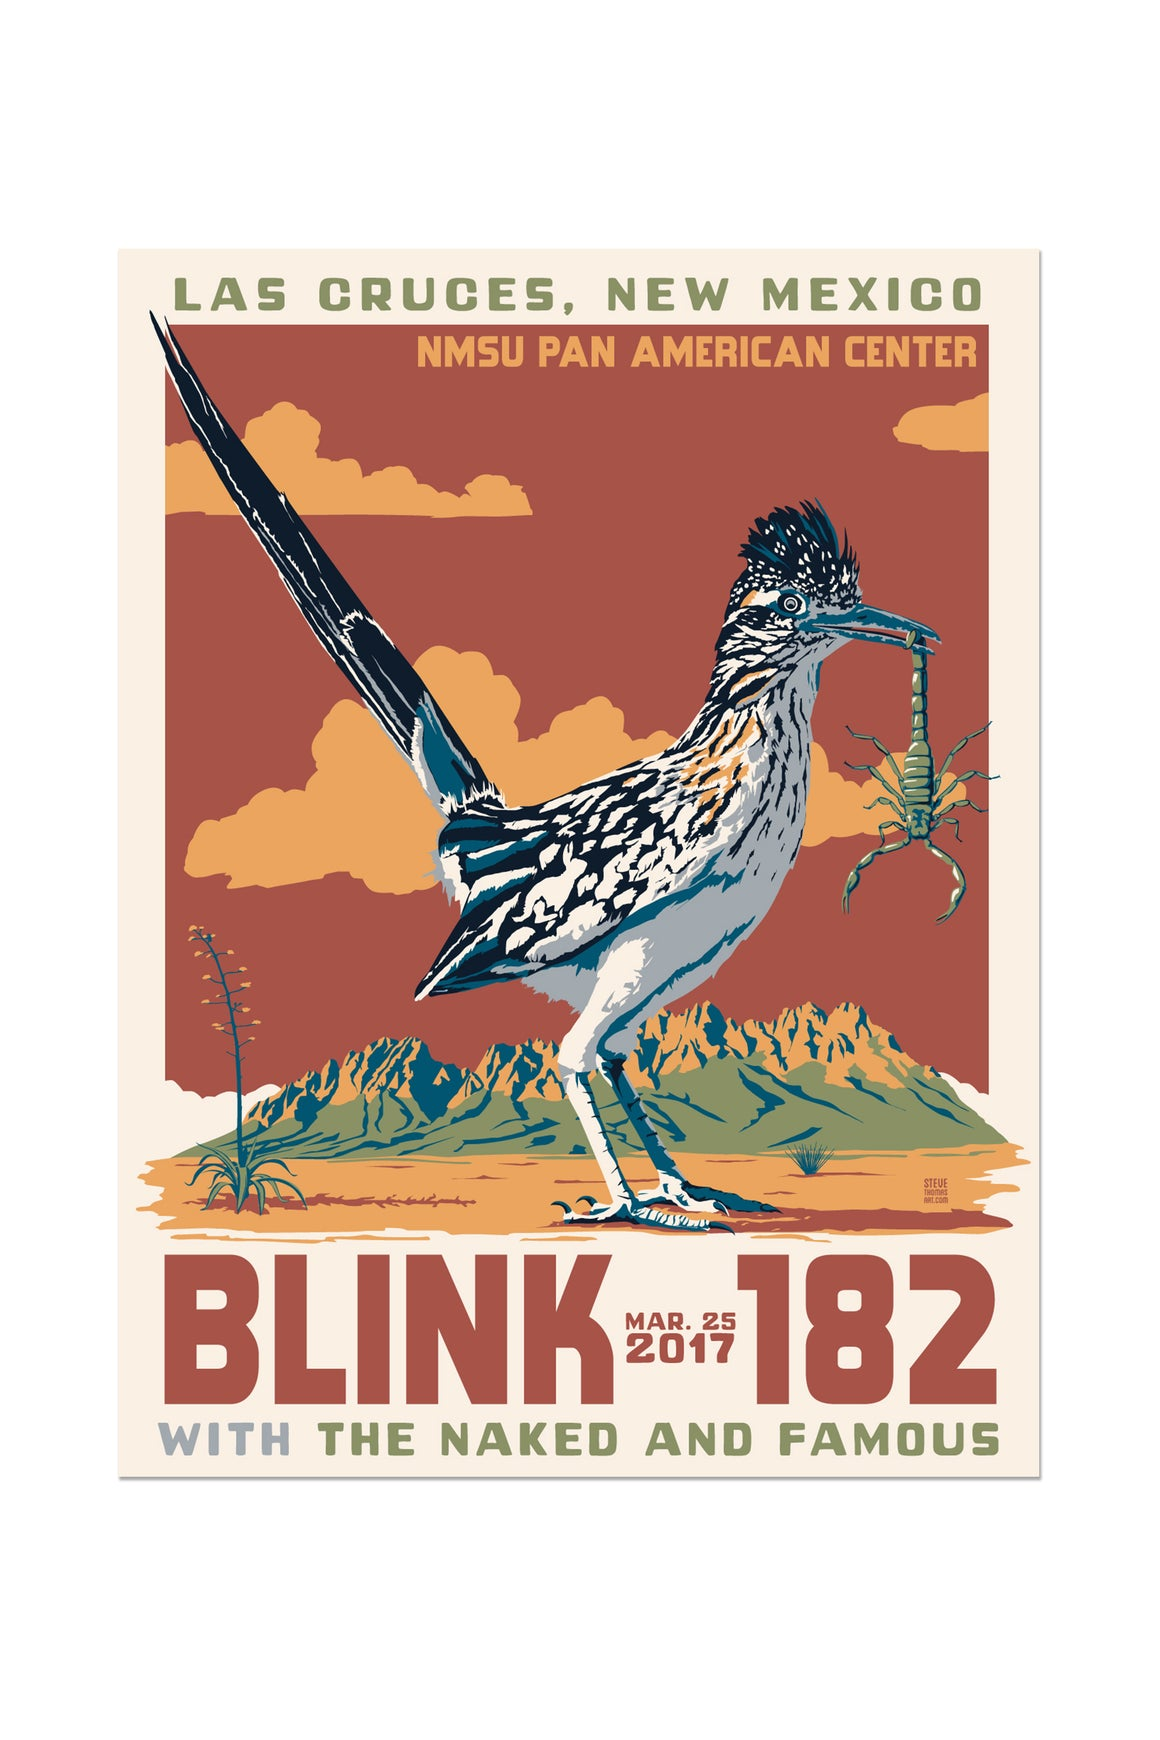 blink-182 3/25/2017 Las Cruces, NM Event Poster